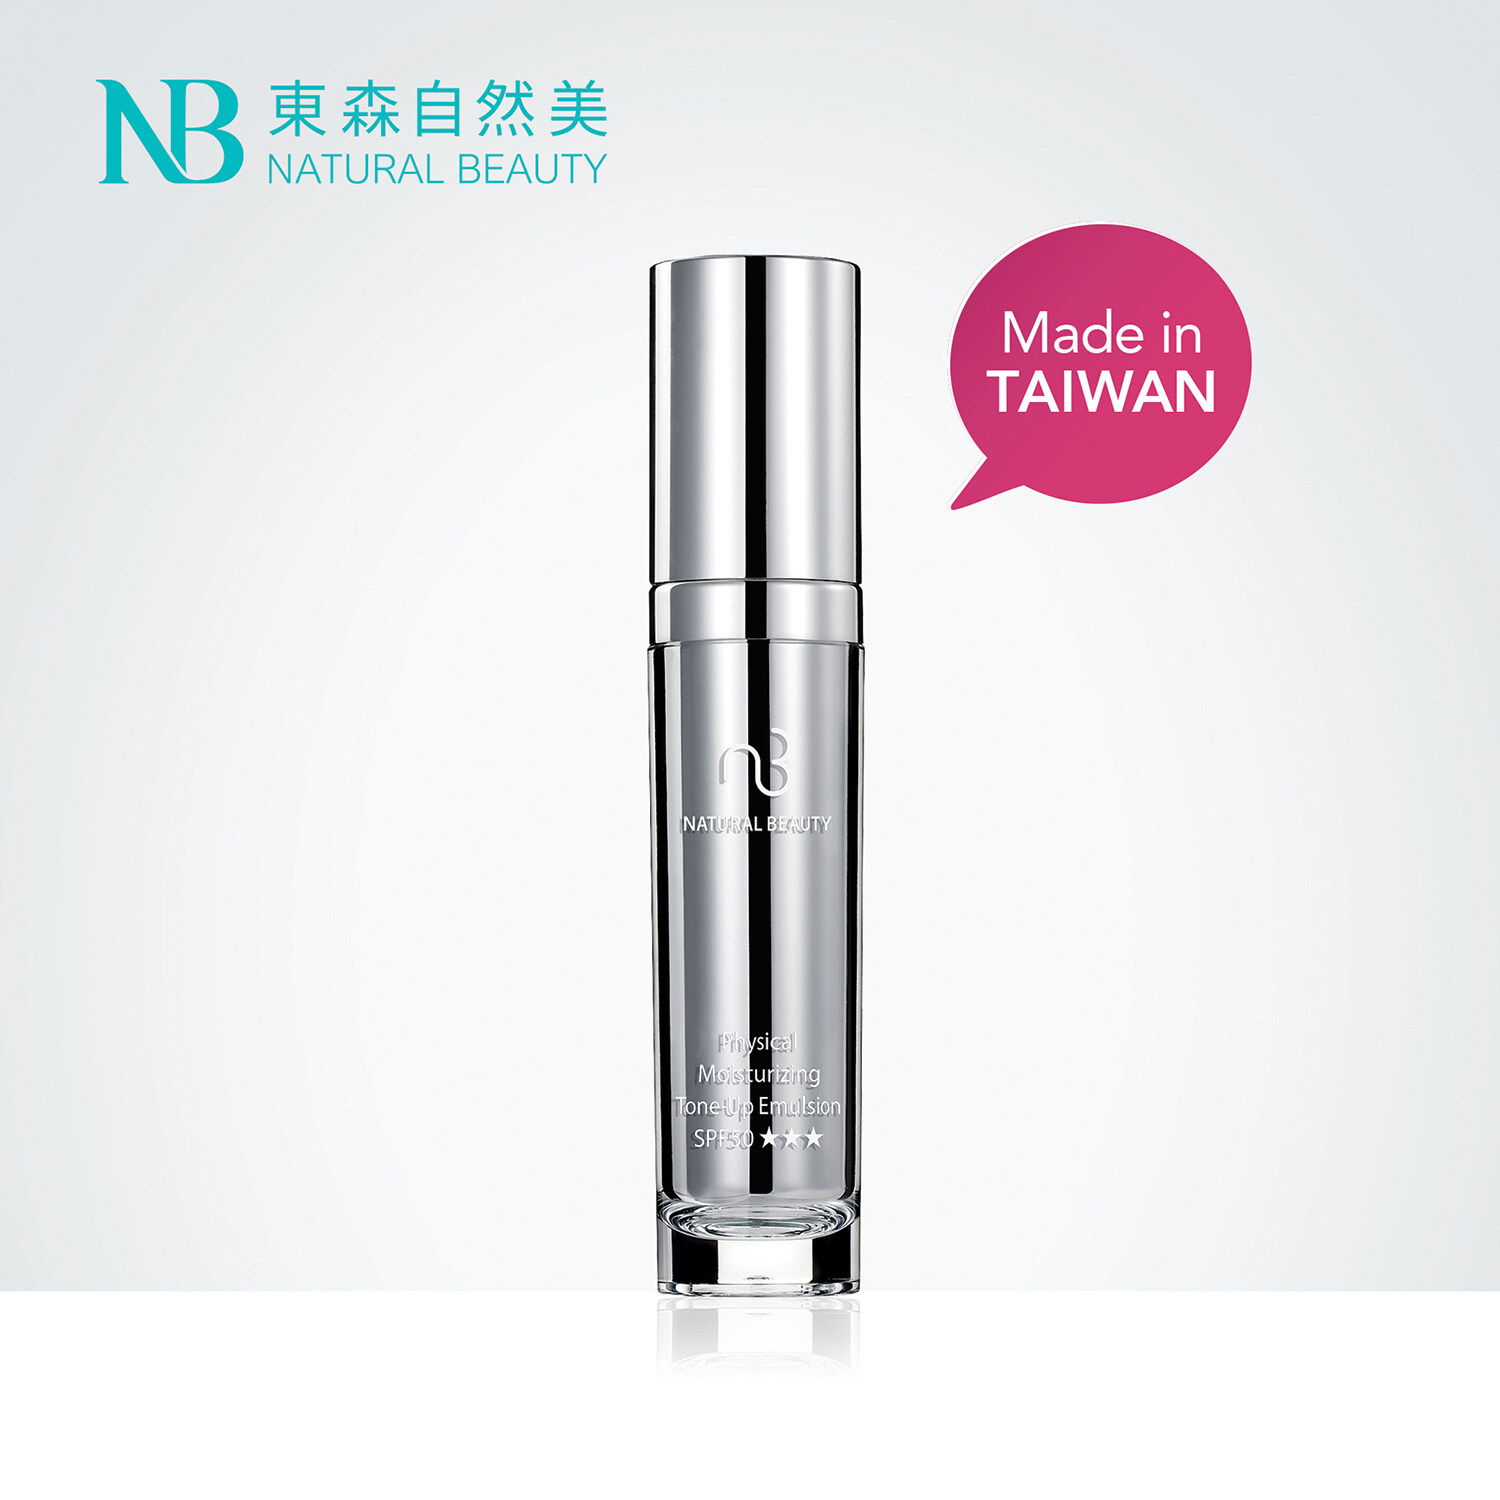 HYDRATING Physical Moiturizing Tone-Up Emulsion SPF50 ★★★ 30ml (Sunscreen / Sunblock) - NATURAL BEAUTY 东森自然美